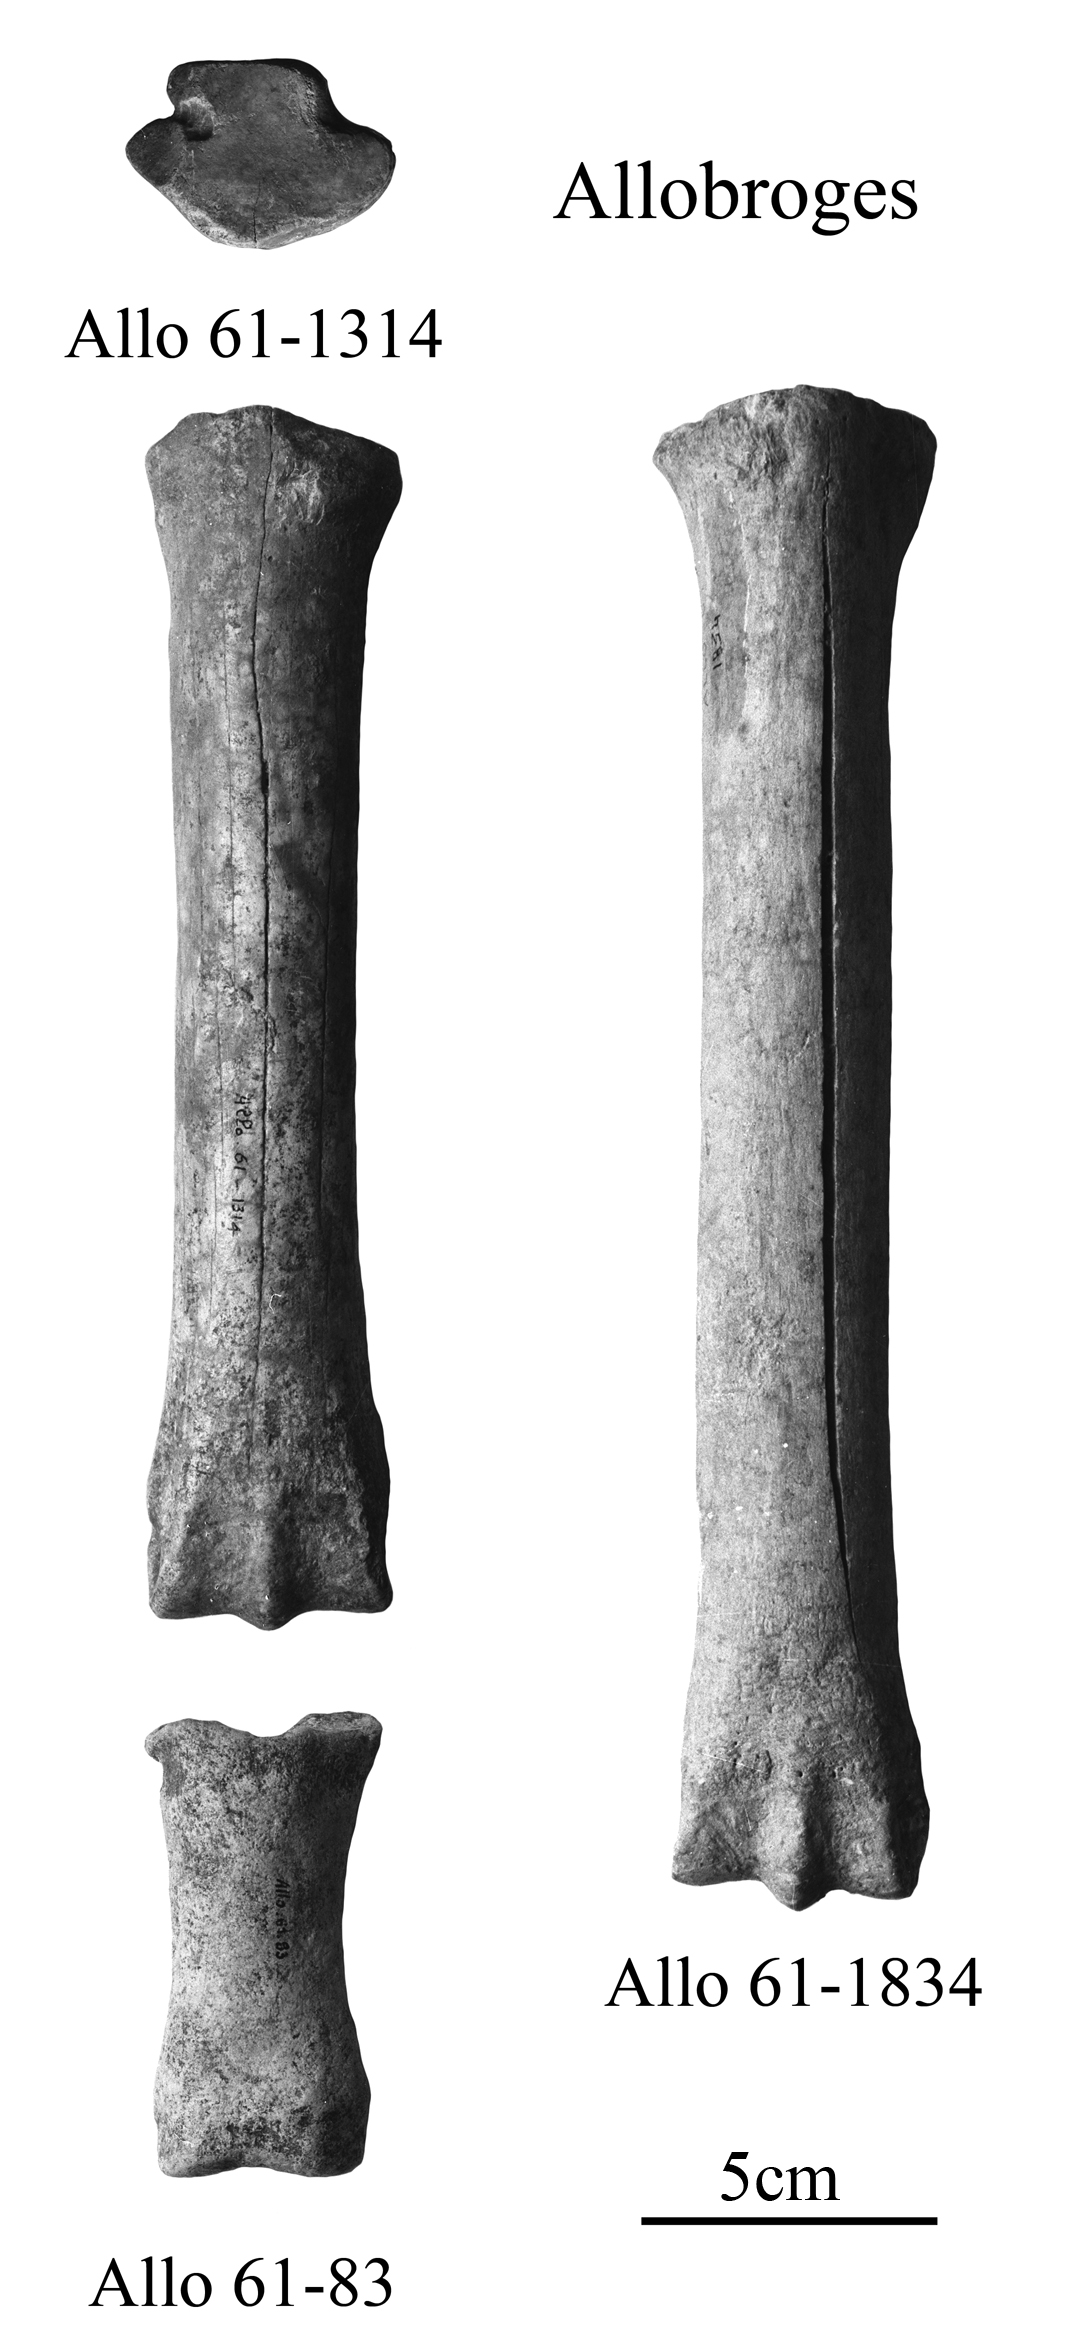 Equus melkiensis and E. aff. melkiensis, Limb bones, Allobroges